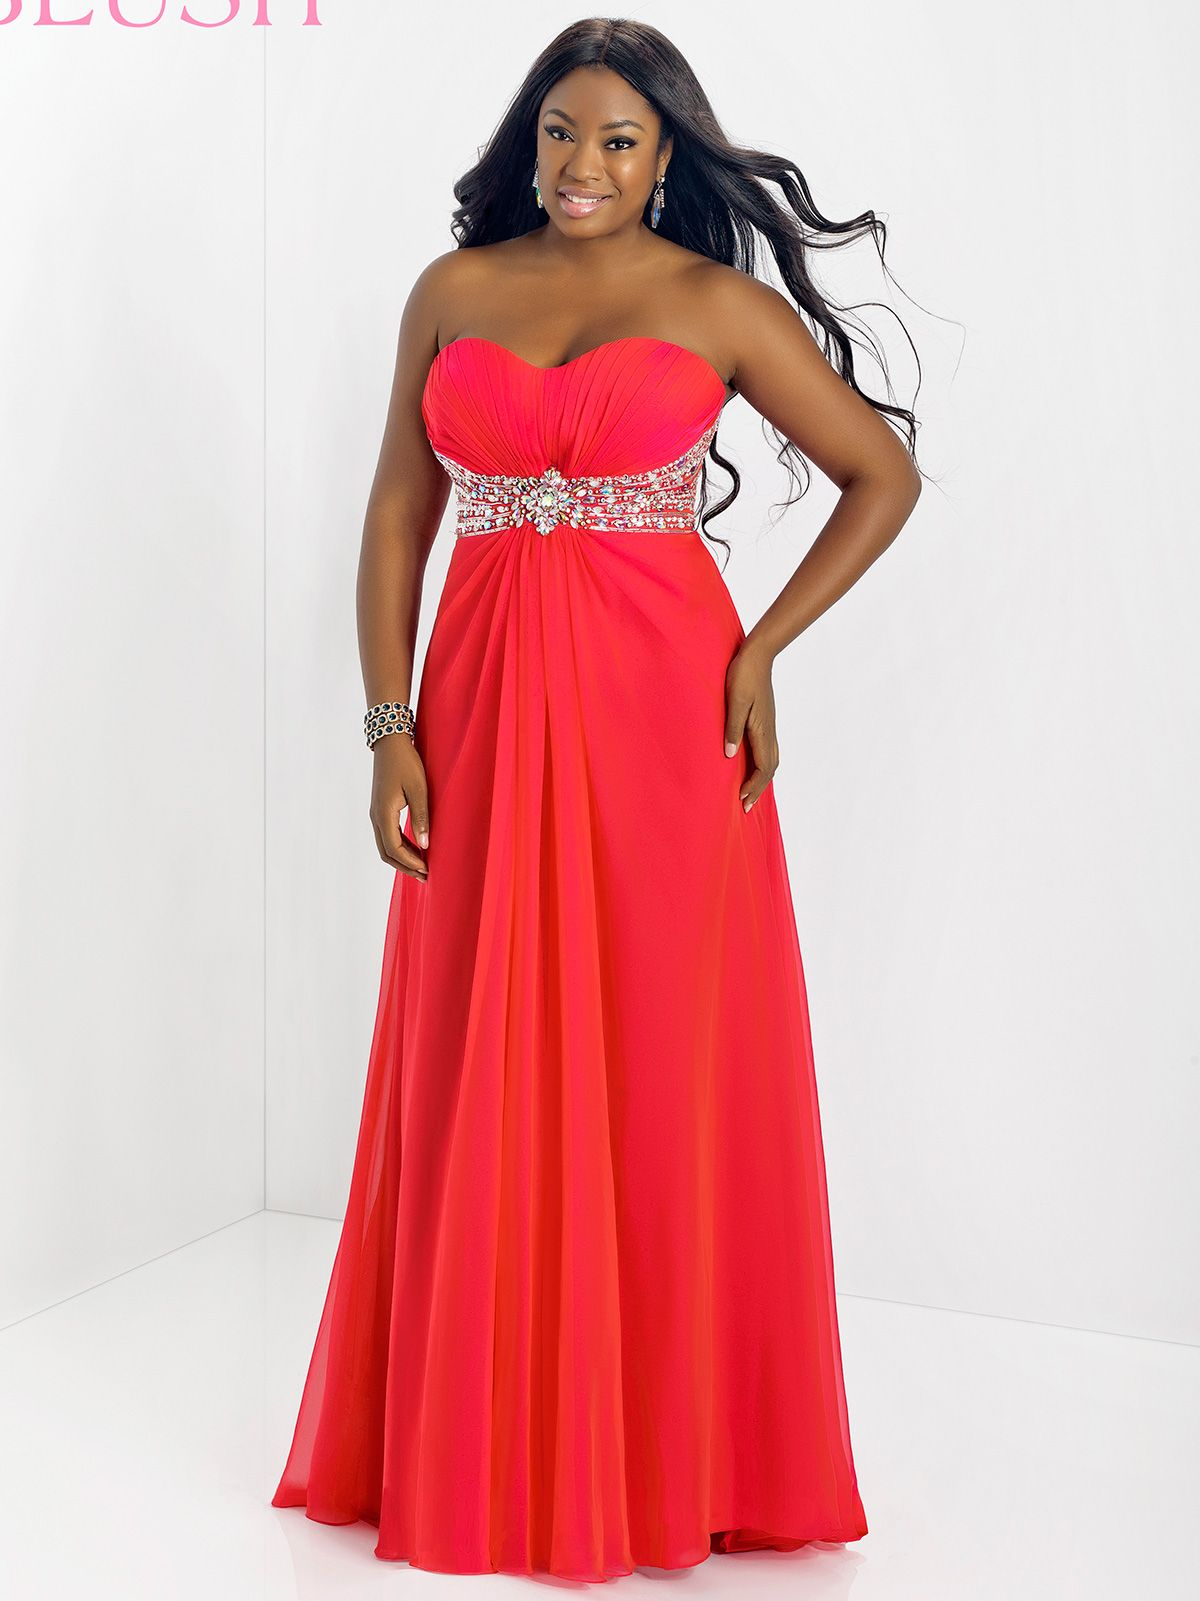 This stunning blush plus size prom dress will be fabulous for any